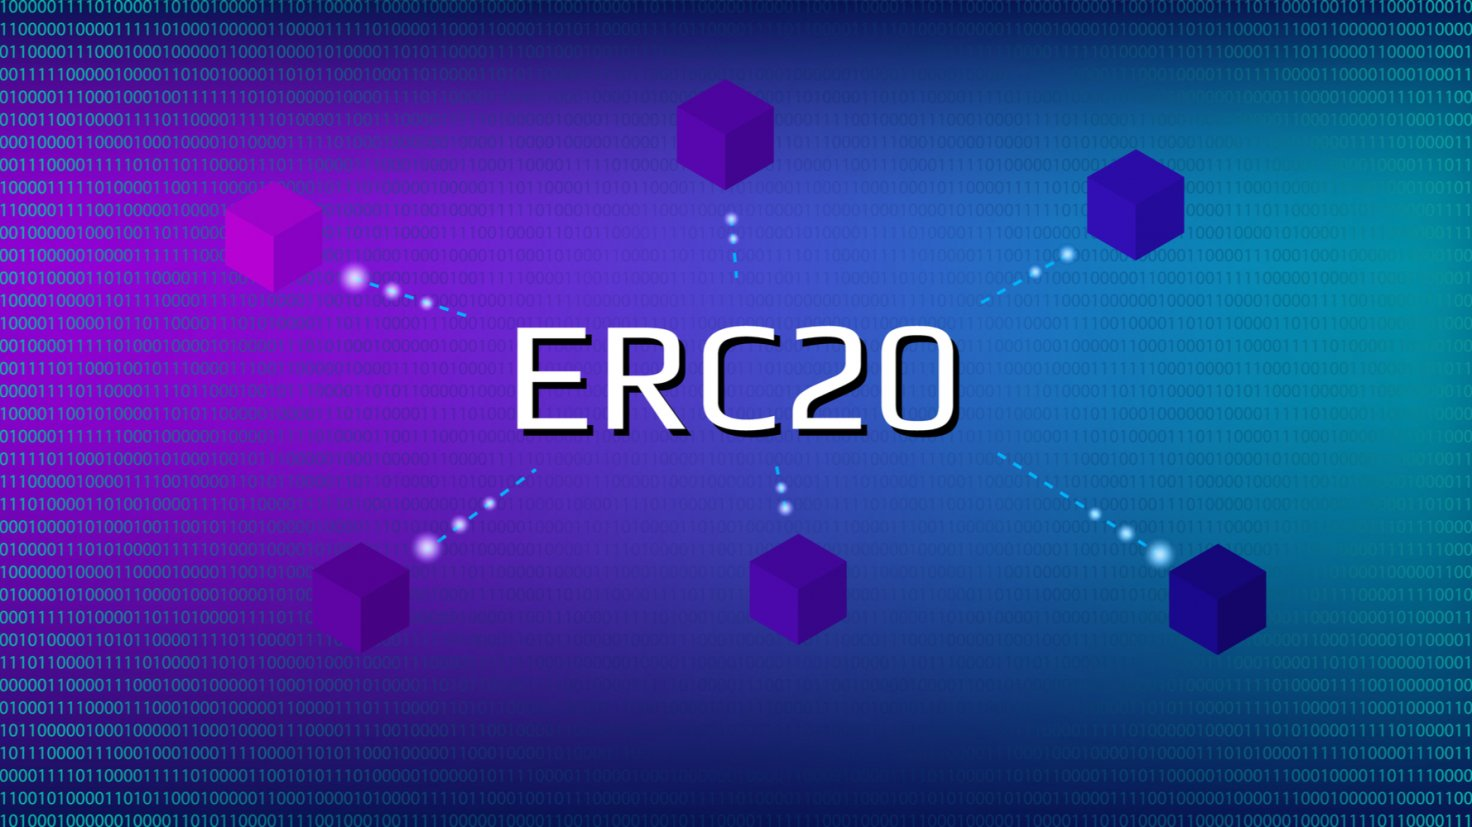 Currency.com Adds 19 Popular ERC-20 And DeFi Tokens To Its Platform